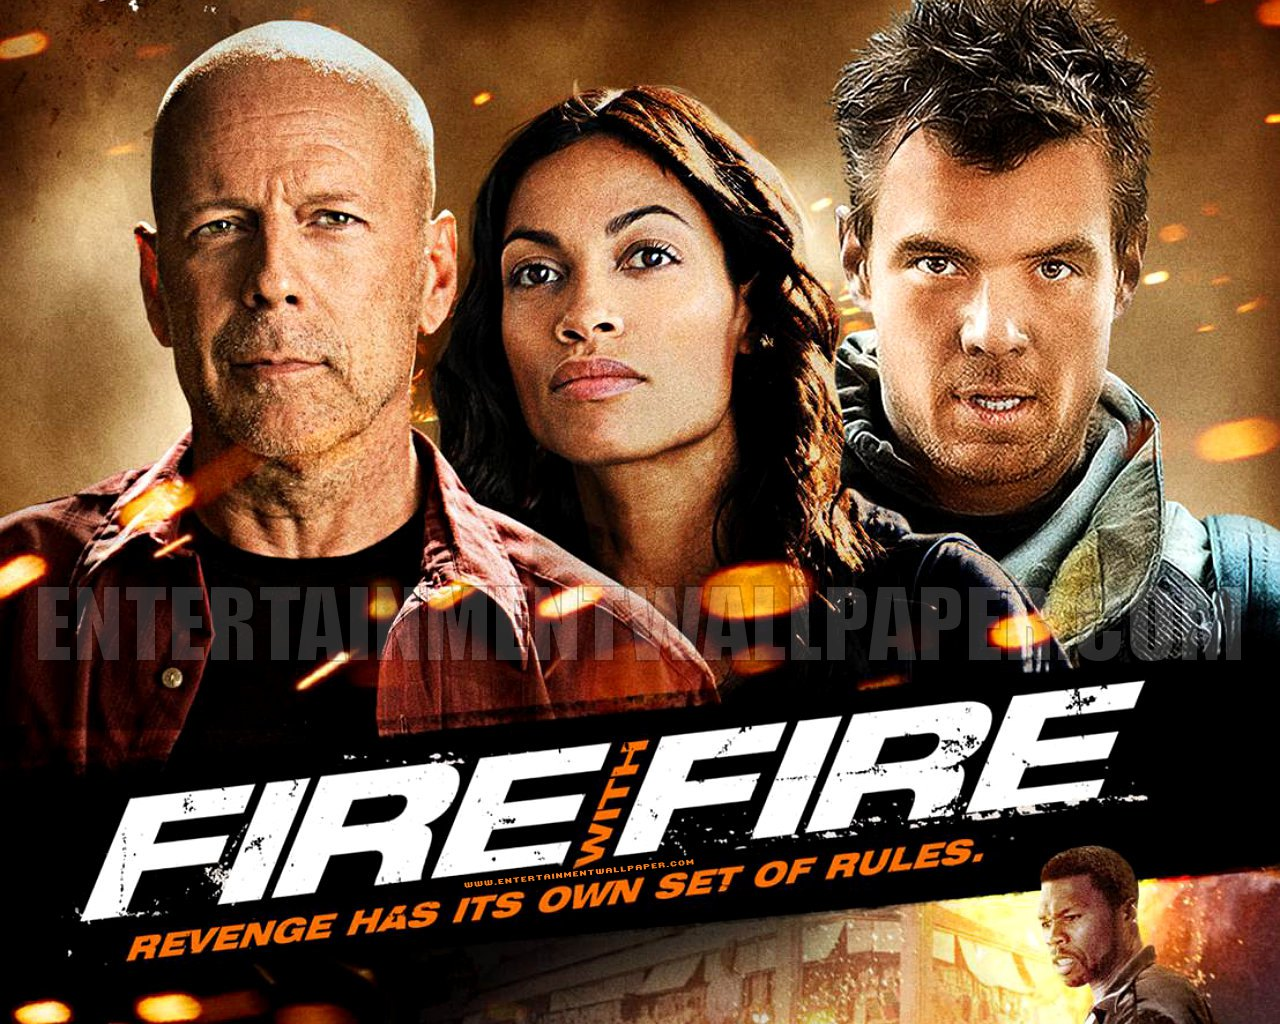 http://1.bp.blogspot.com/-_zieRWlLOgE/USmurx2sYuI/AAAAAAAAAGA/xHT4Cp6s42k/s1600/Fire+with+Fire+Movie.jpg